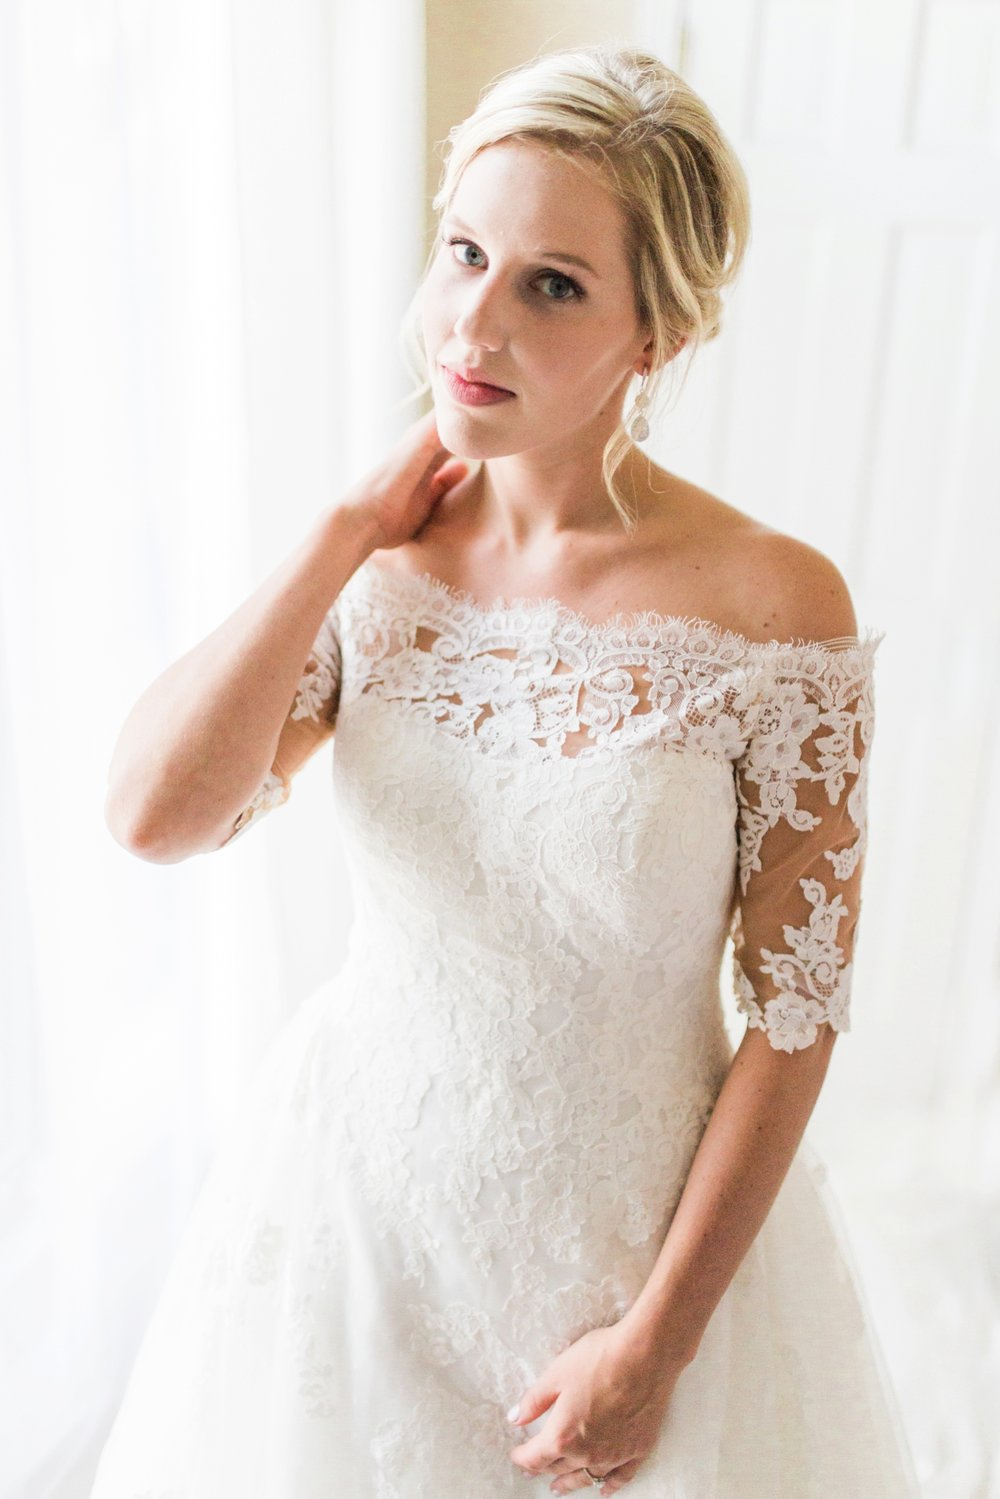 Joe-Katie-Stylish-Elegant-Blush-Gold-Fall-Indiana-Film-Wedding-Photographer_7971.jpg